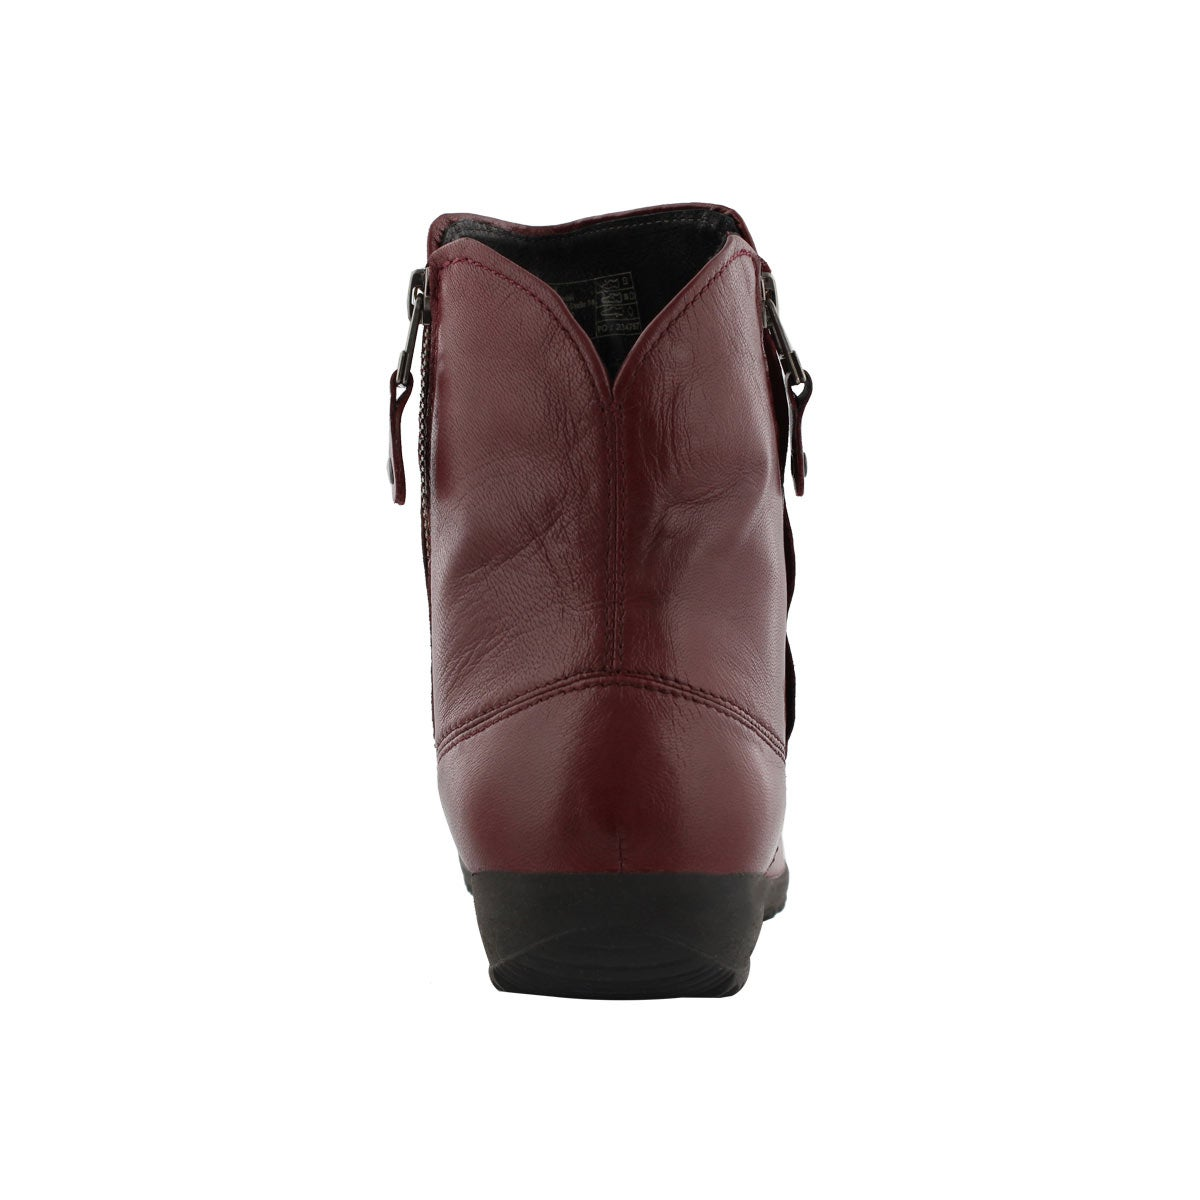 Lds Naly 24 bordo side zip ankle boot